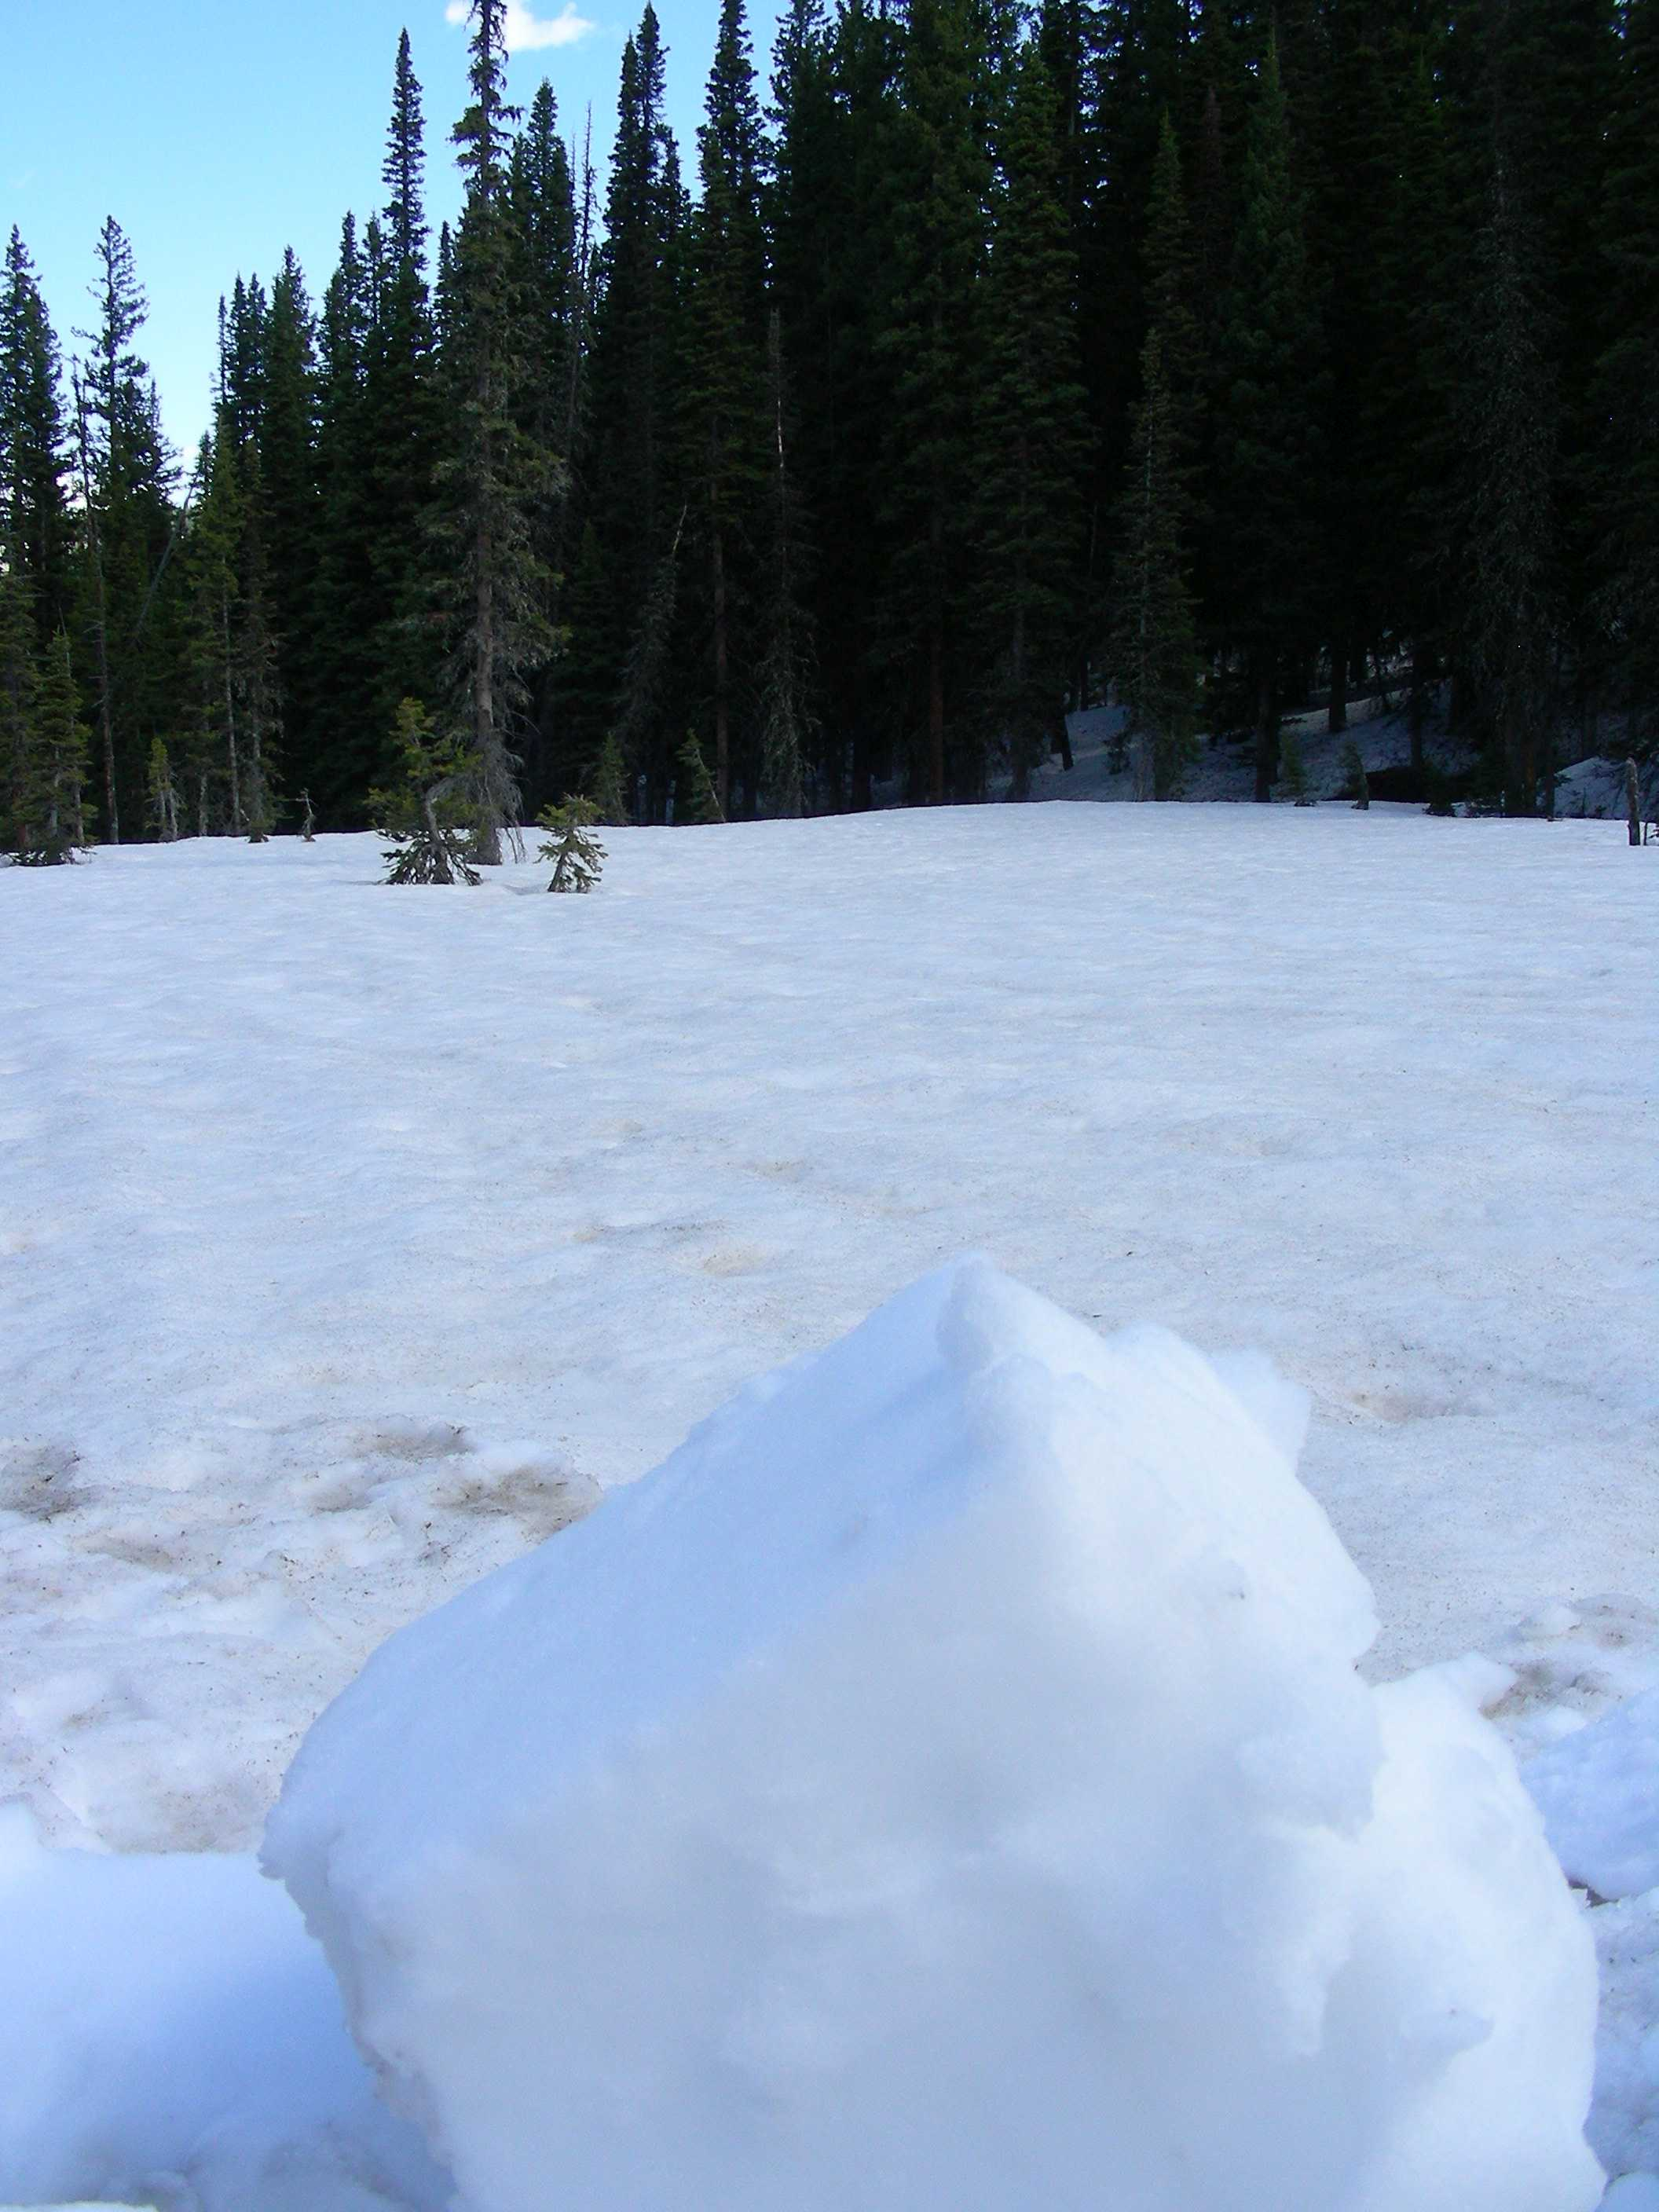 Clean snow block in foreground to show contrast with dirty snow surface at Rabbit Ears.